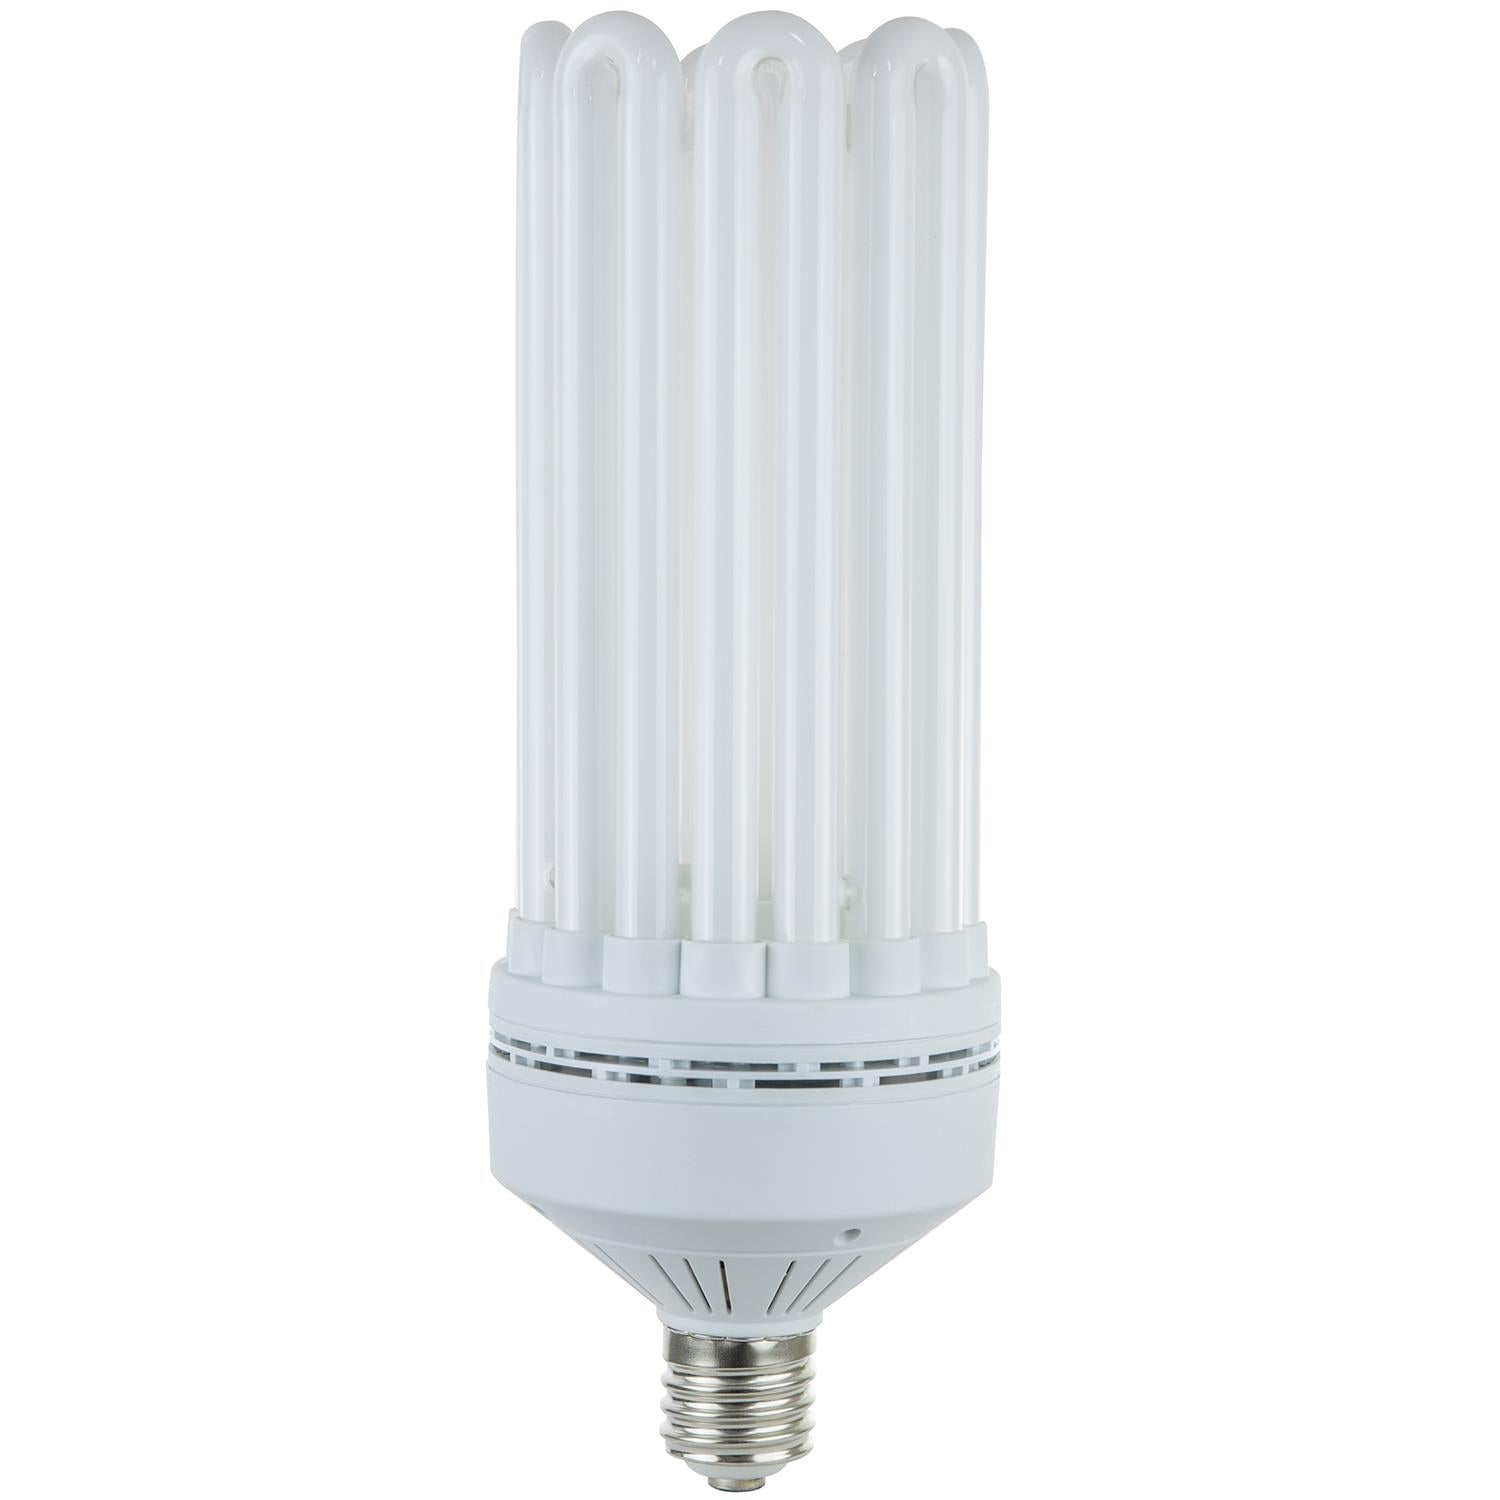 SUNLITE 200w 120v Spiral E39 T5 Tube Fluorescent Grow Light Bulb